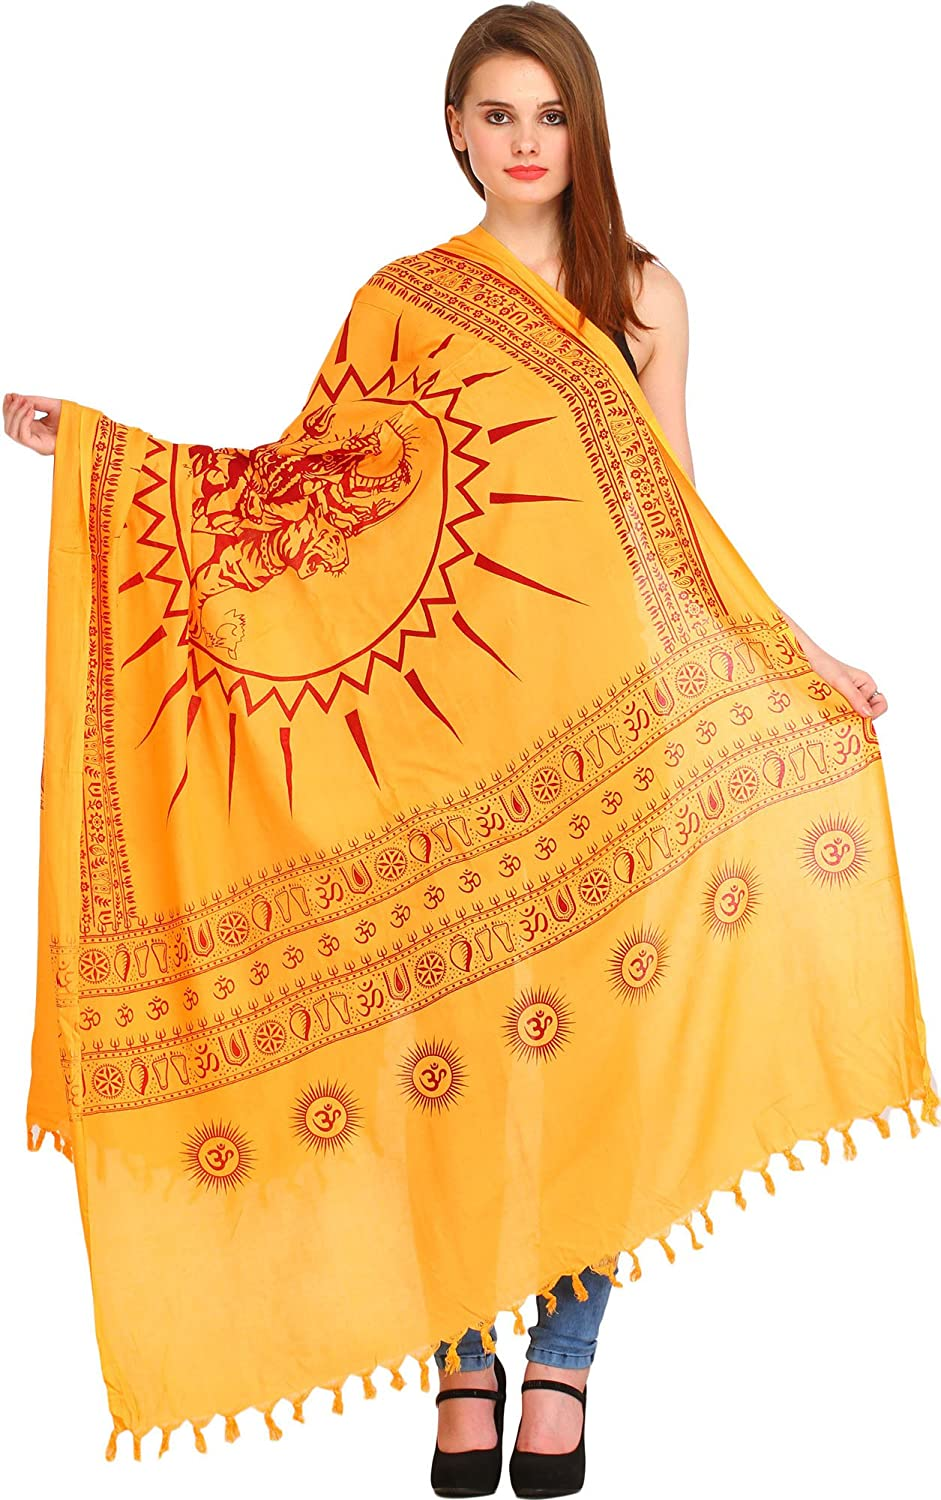 Exotic India Pale-Marigold Hindu Prayer Shawl of Goddess Durga - Yellow SRB55